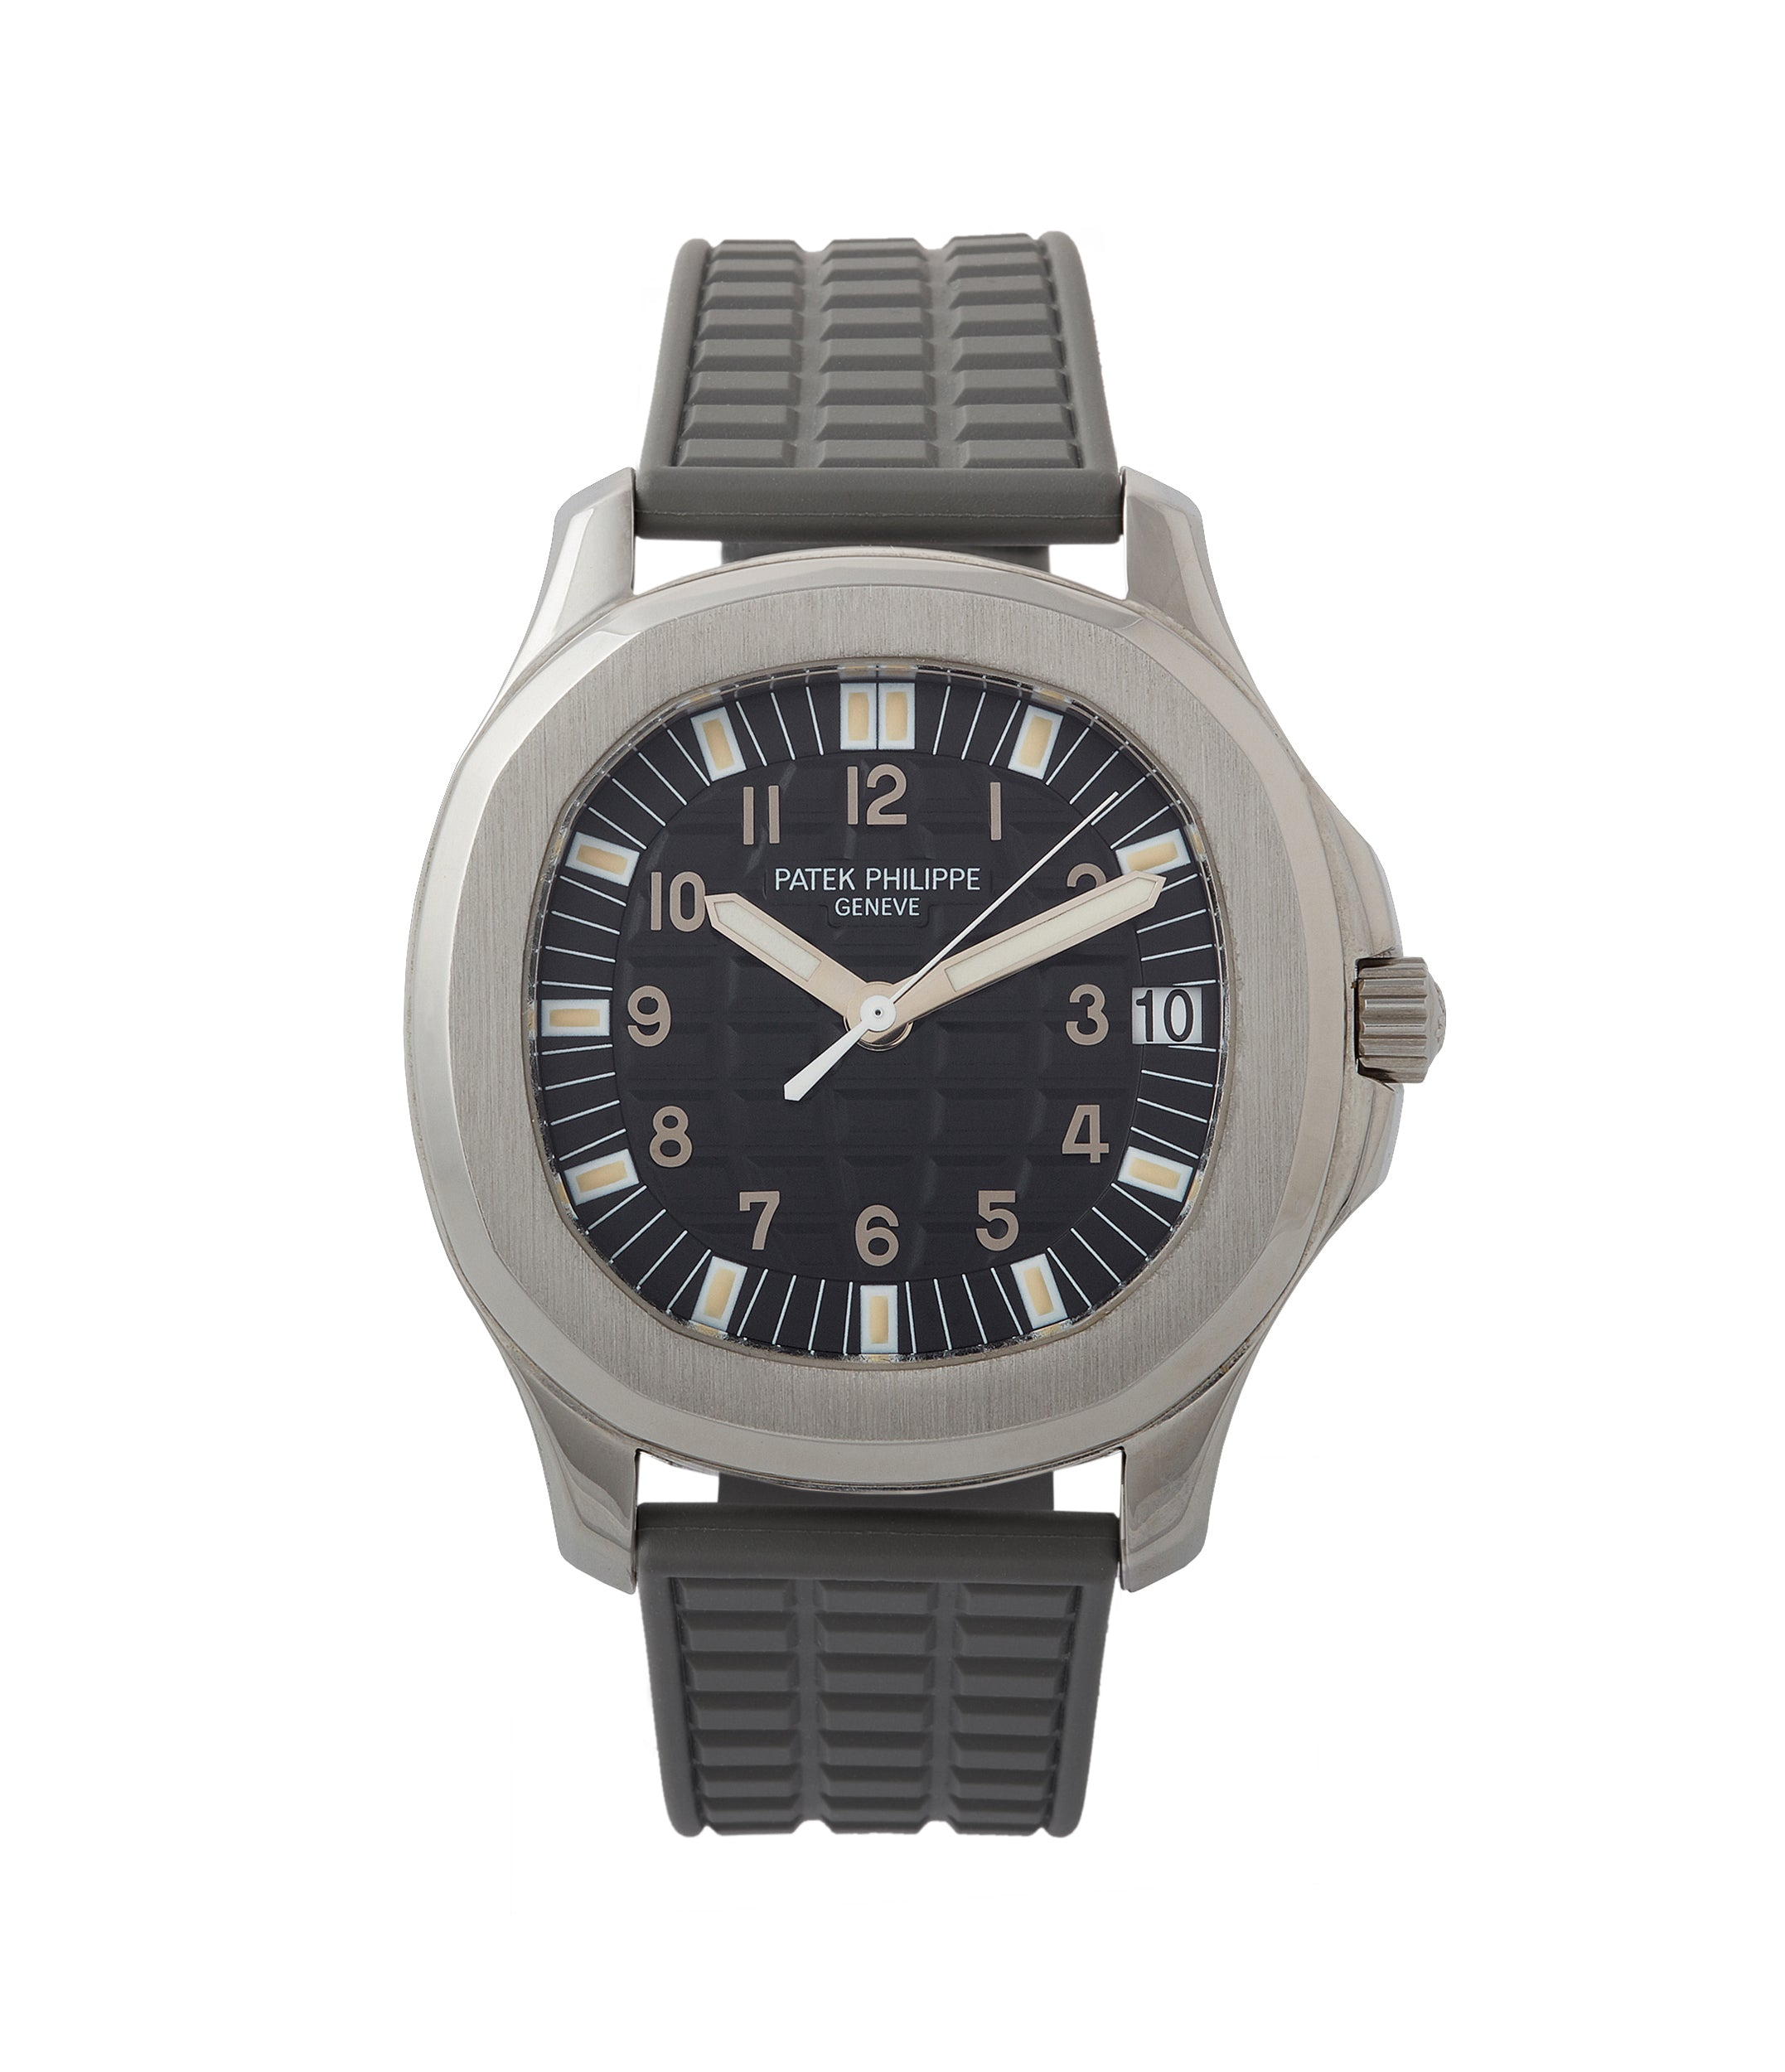 buy Patek Philippe Aquanaut 5065/1A-010 Jumbo steel sport pre-owned watch for sale online at A Collected Man London UK specialist of rare watches